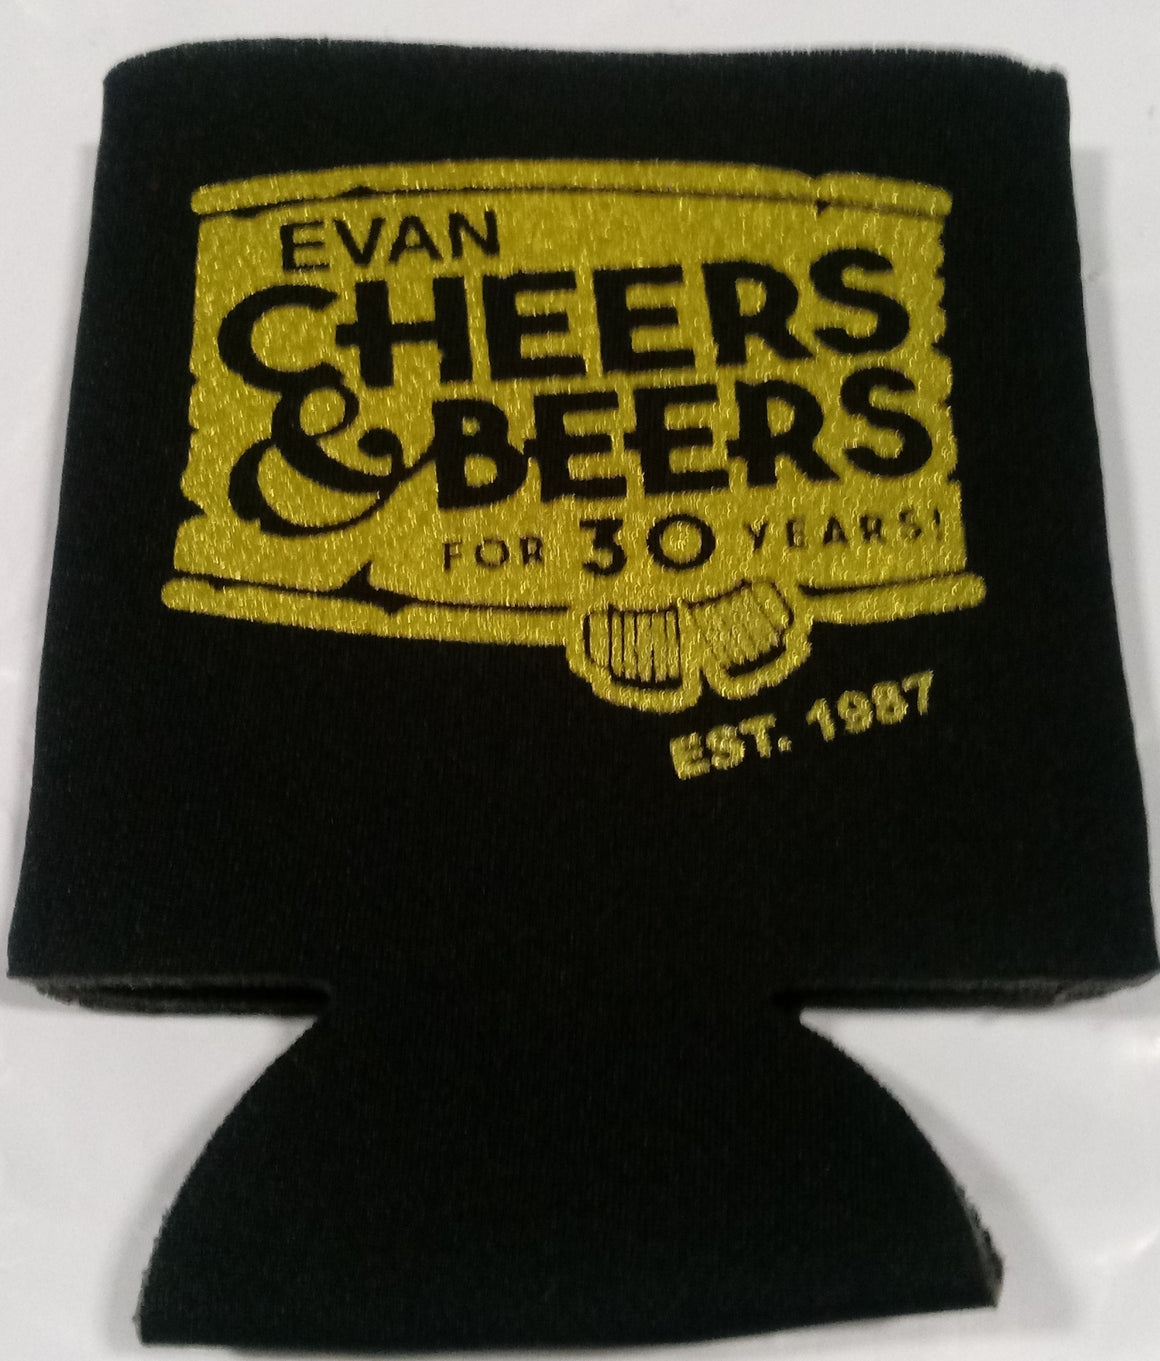 Cheers and Beers to 30th Birthday party favors